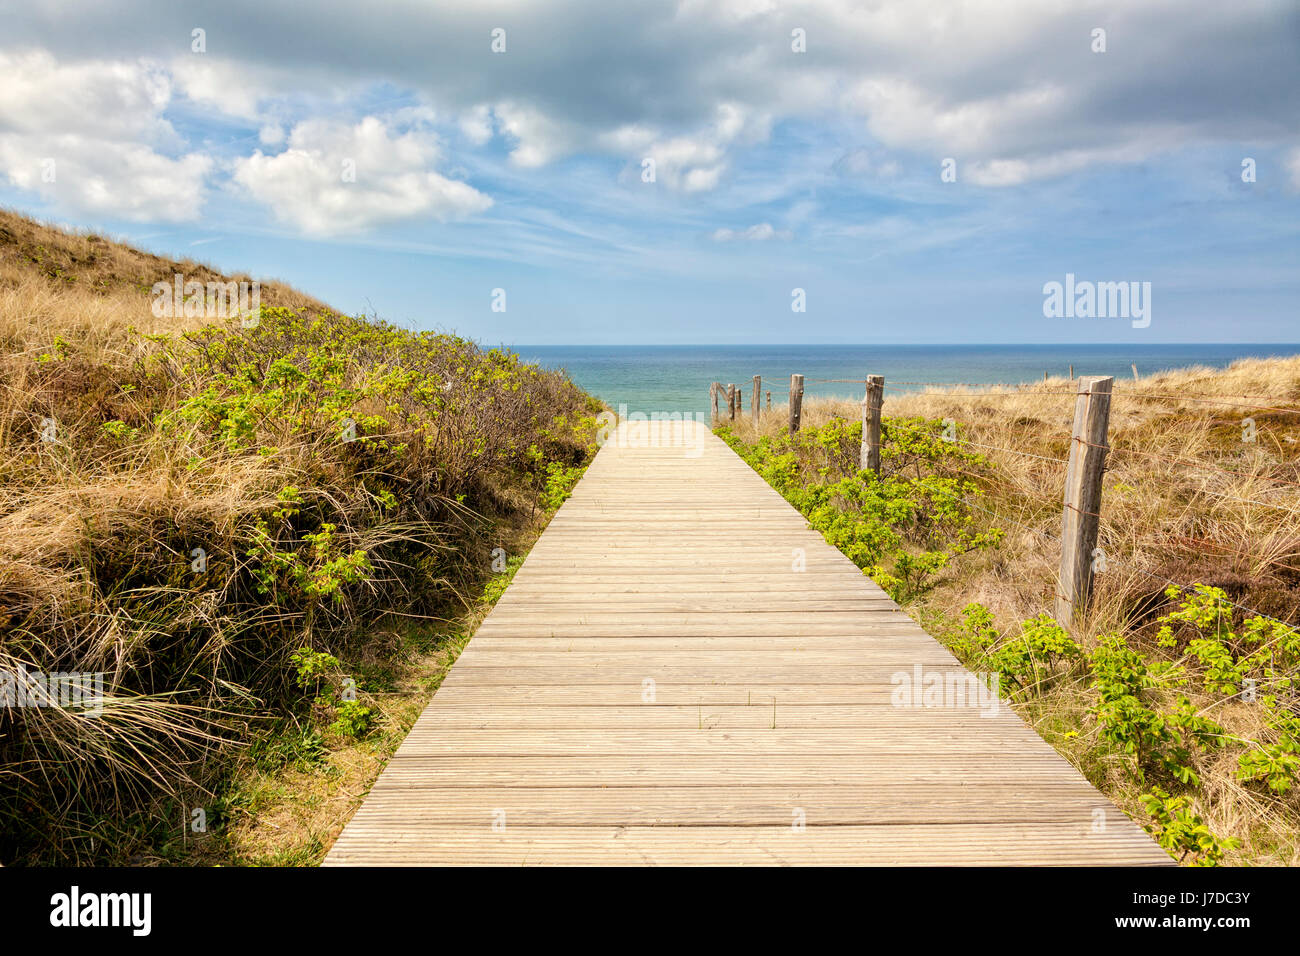 Wooden path throug the dunes to the beach of Kampen, Sylt, germany - Stock Image